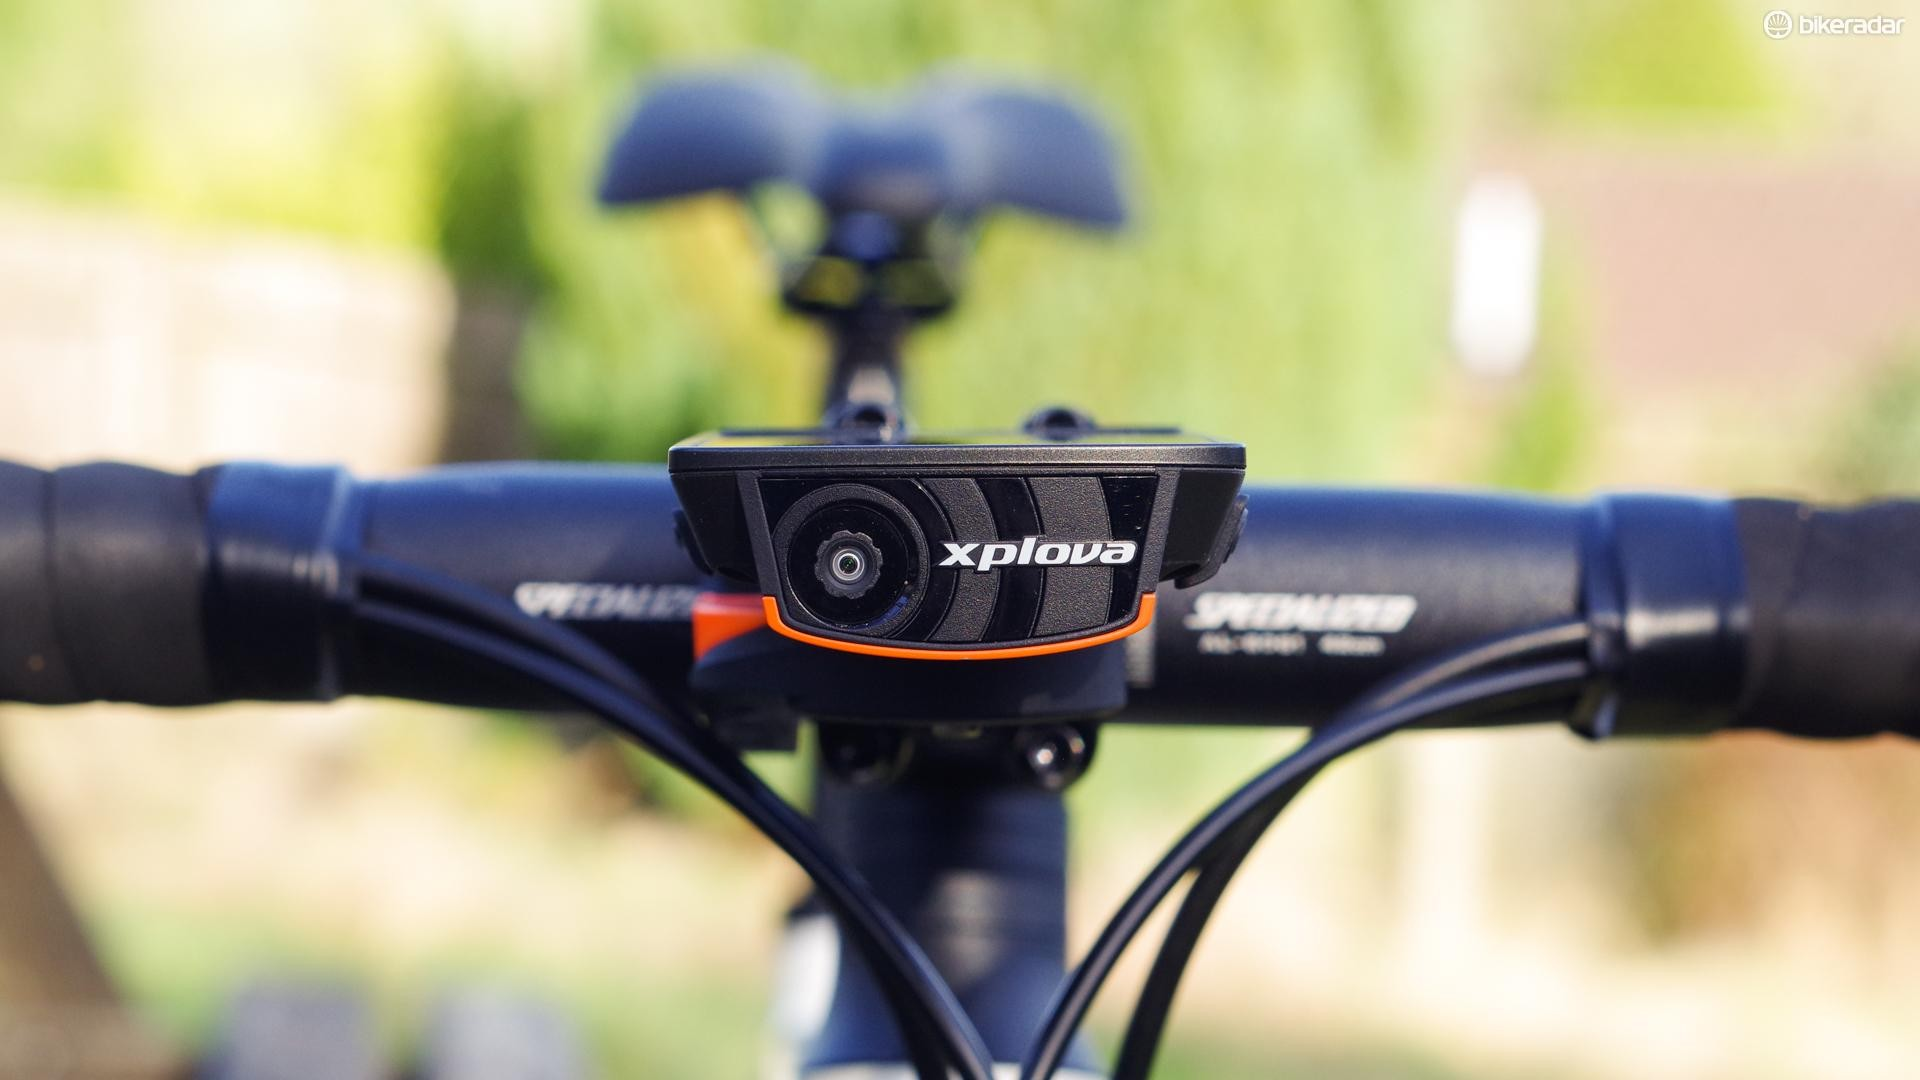 The X5's USP is a forward facing video camera, which records short snippets of footage